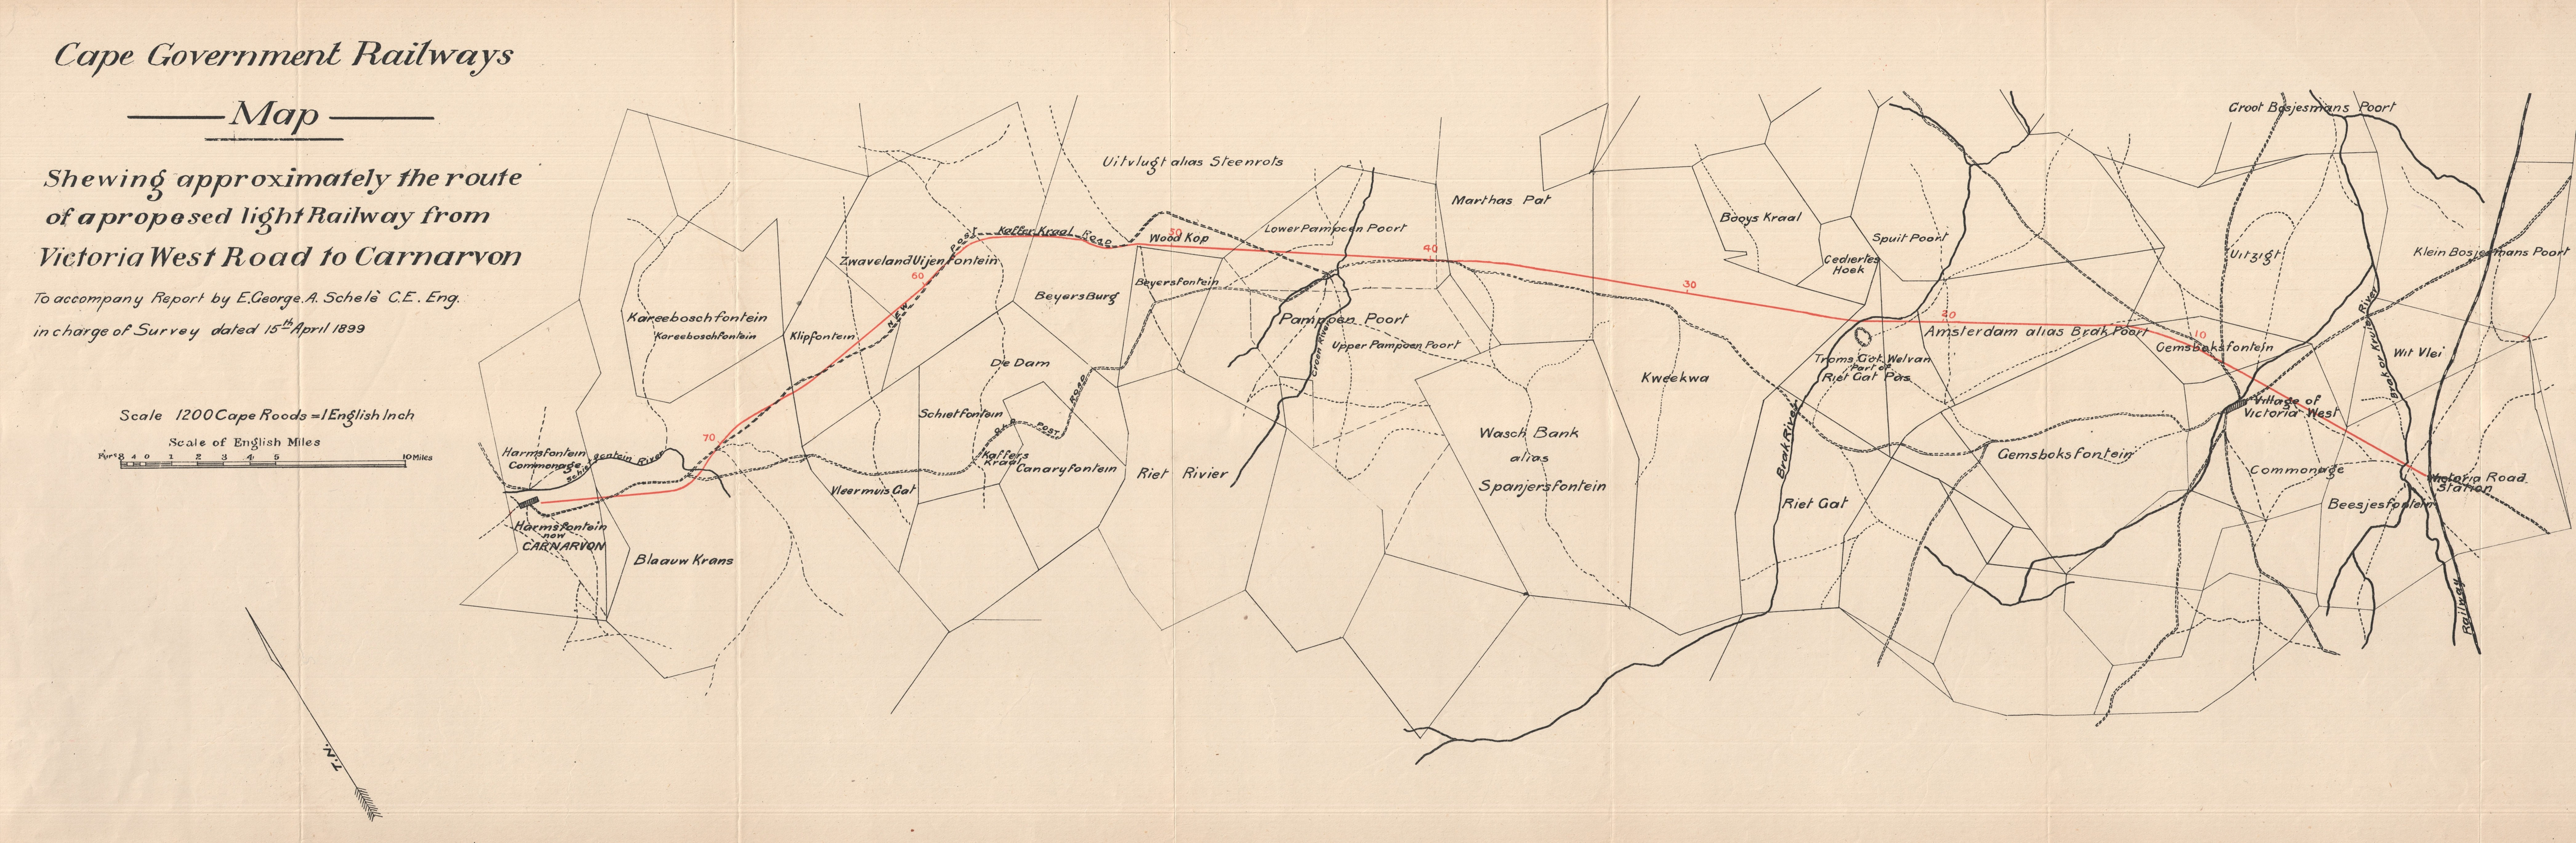 Cape Government Railways map shewing approximately the route of a